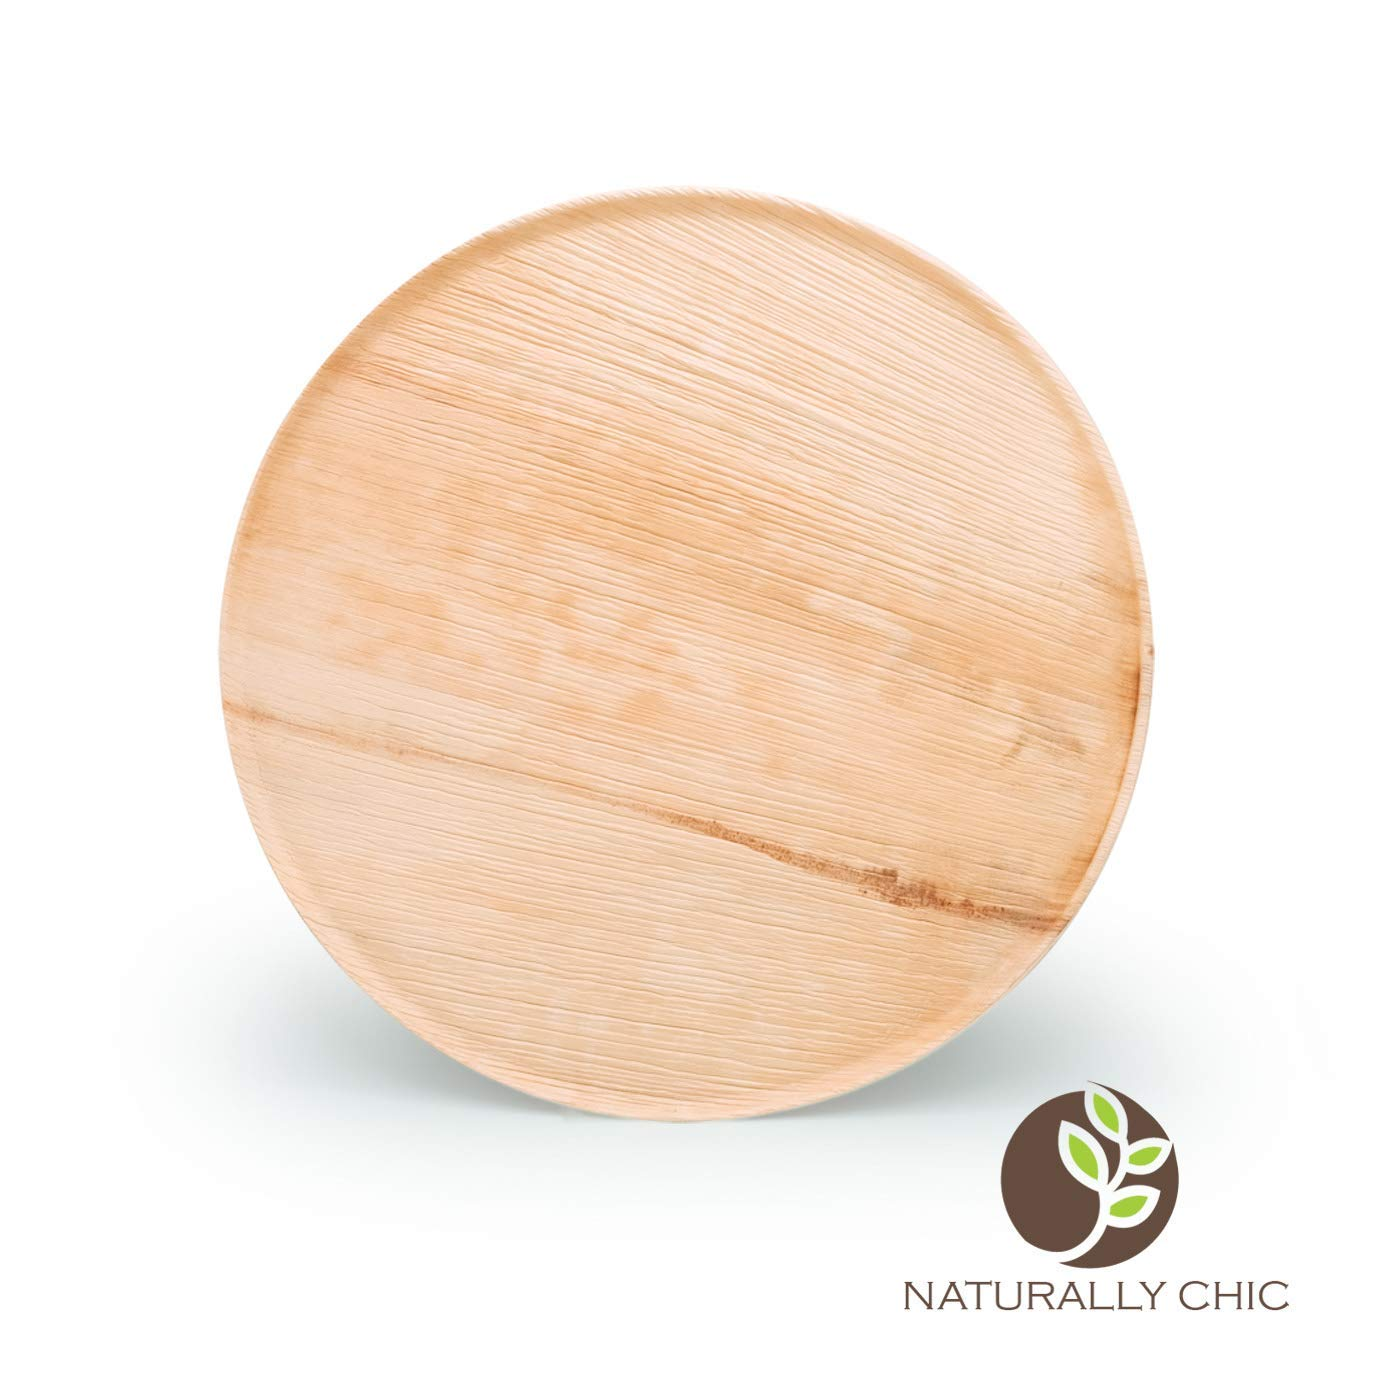 Naturally Chic Palm Leaf Compostable Serving Trays - 13'' Round, Biodegradable Disposable Eco Friendly Trays for Weddings, Parties, BBQs, Events (100 Pack) by Naturally Chic